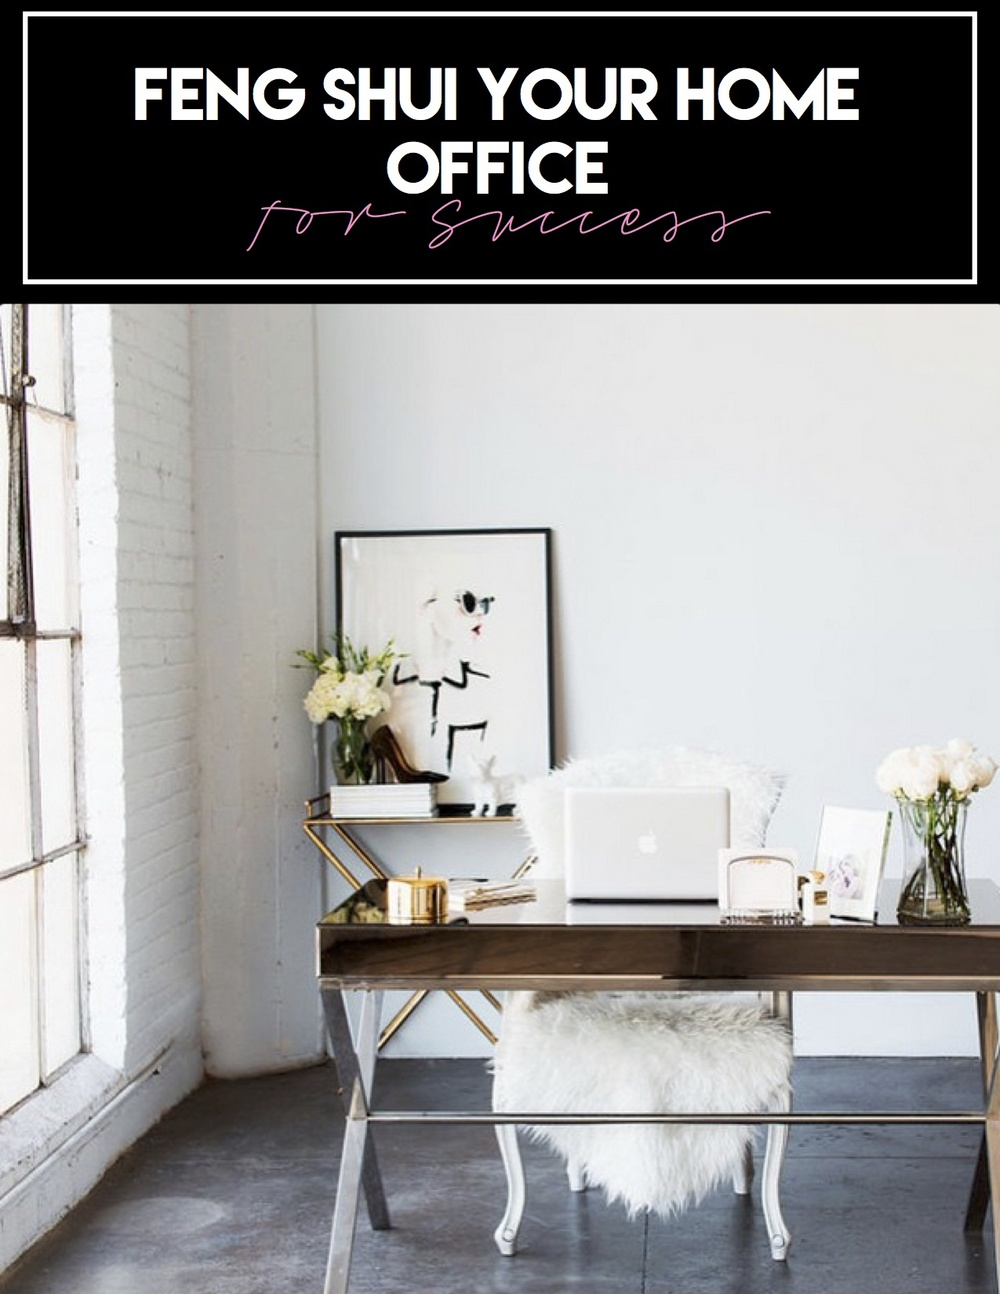 Home office feng shui - Entrepreneuress 101 How To Feng Shui Your Home Office For Success